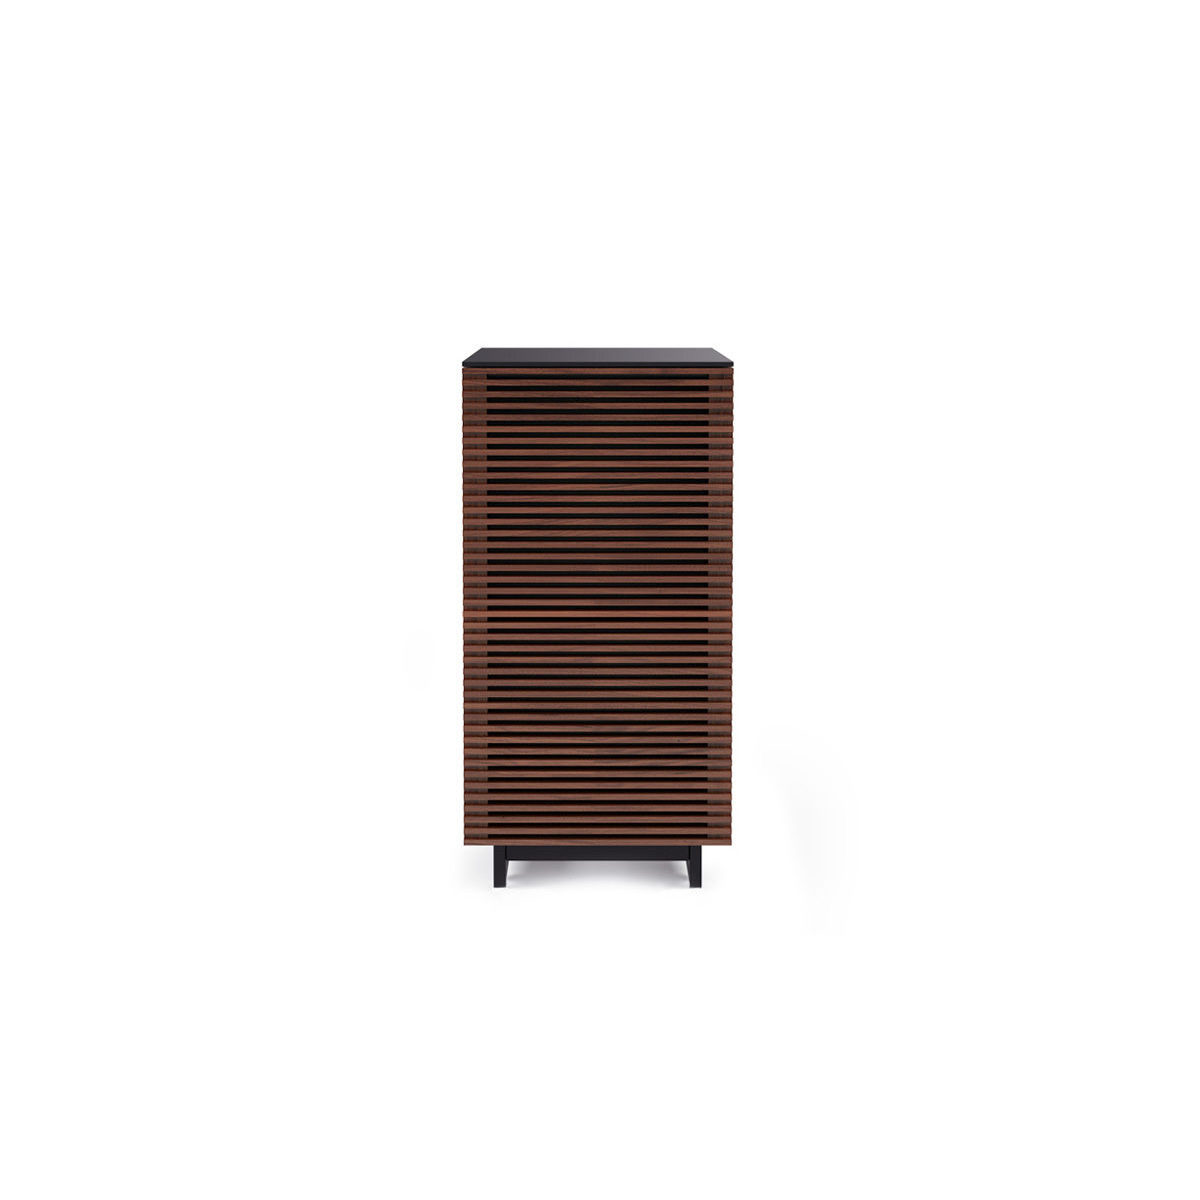 View Additional Sizes; Full Specifications; User Guide; About Finishes. The  Corridor Audio Tower ...